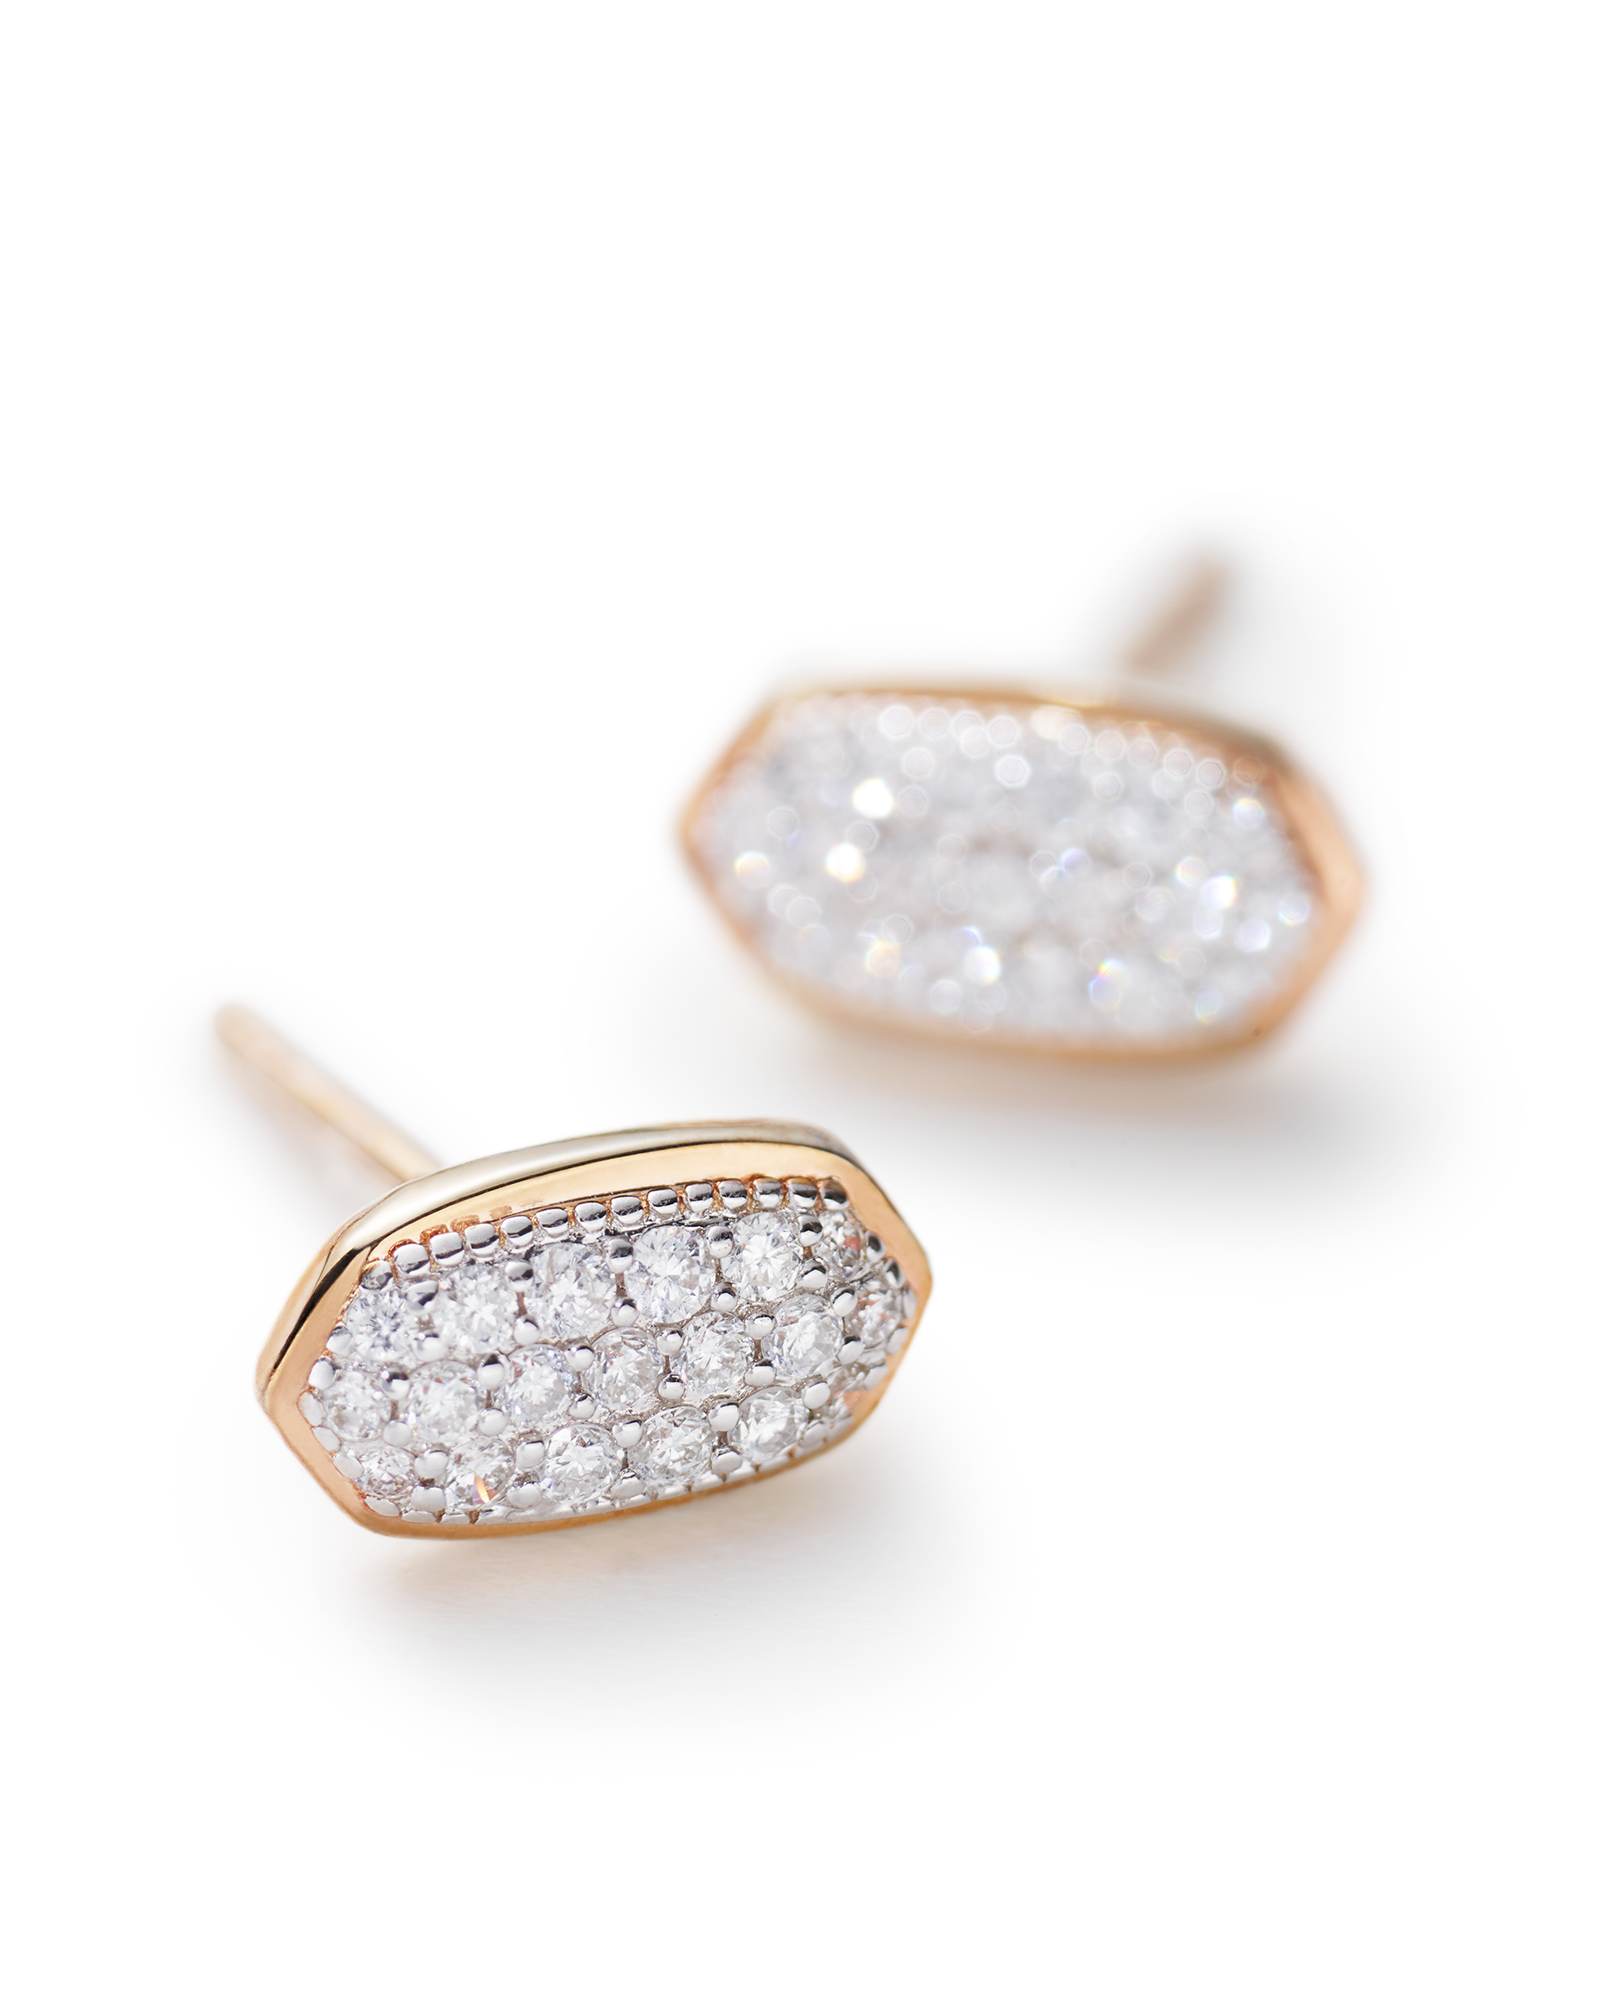 Amelee Earrings in Pave Diamond and 14k Rose Gold